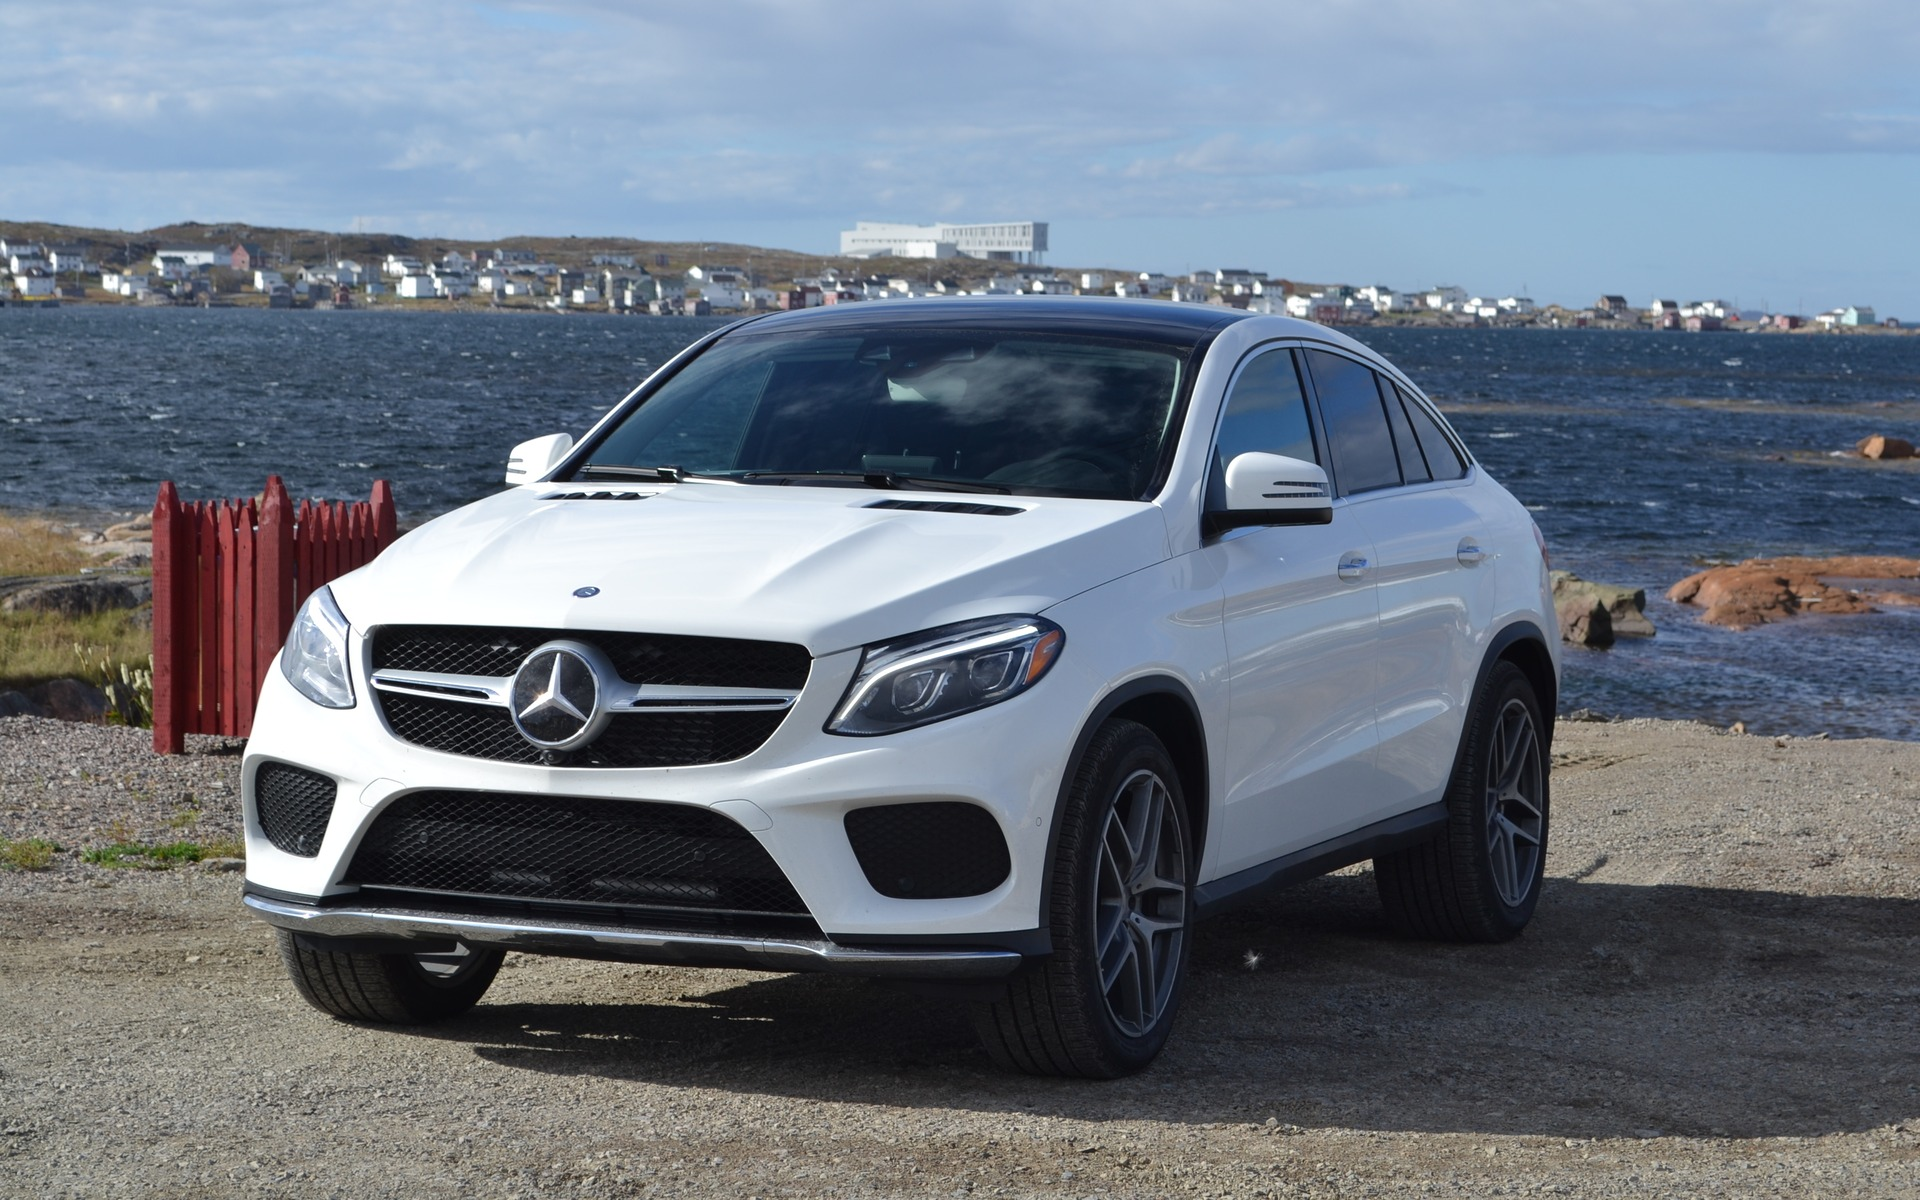 2016 Mercedes Benz Gle Coupe The New Macho Suv The Car Guide